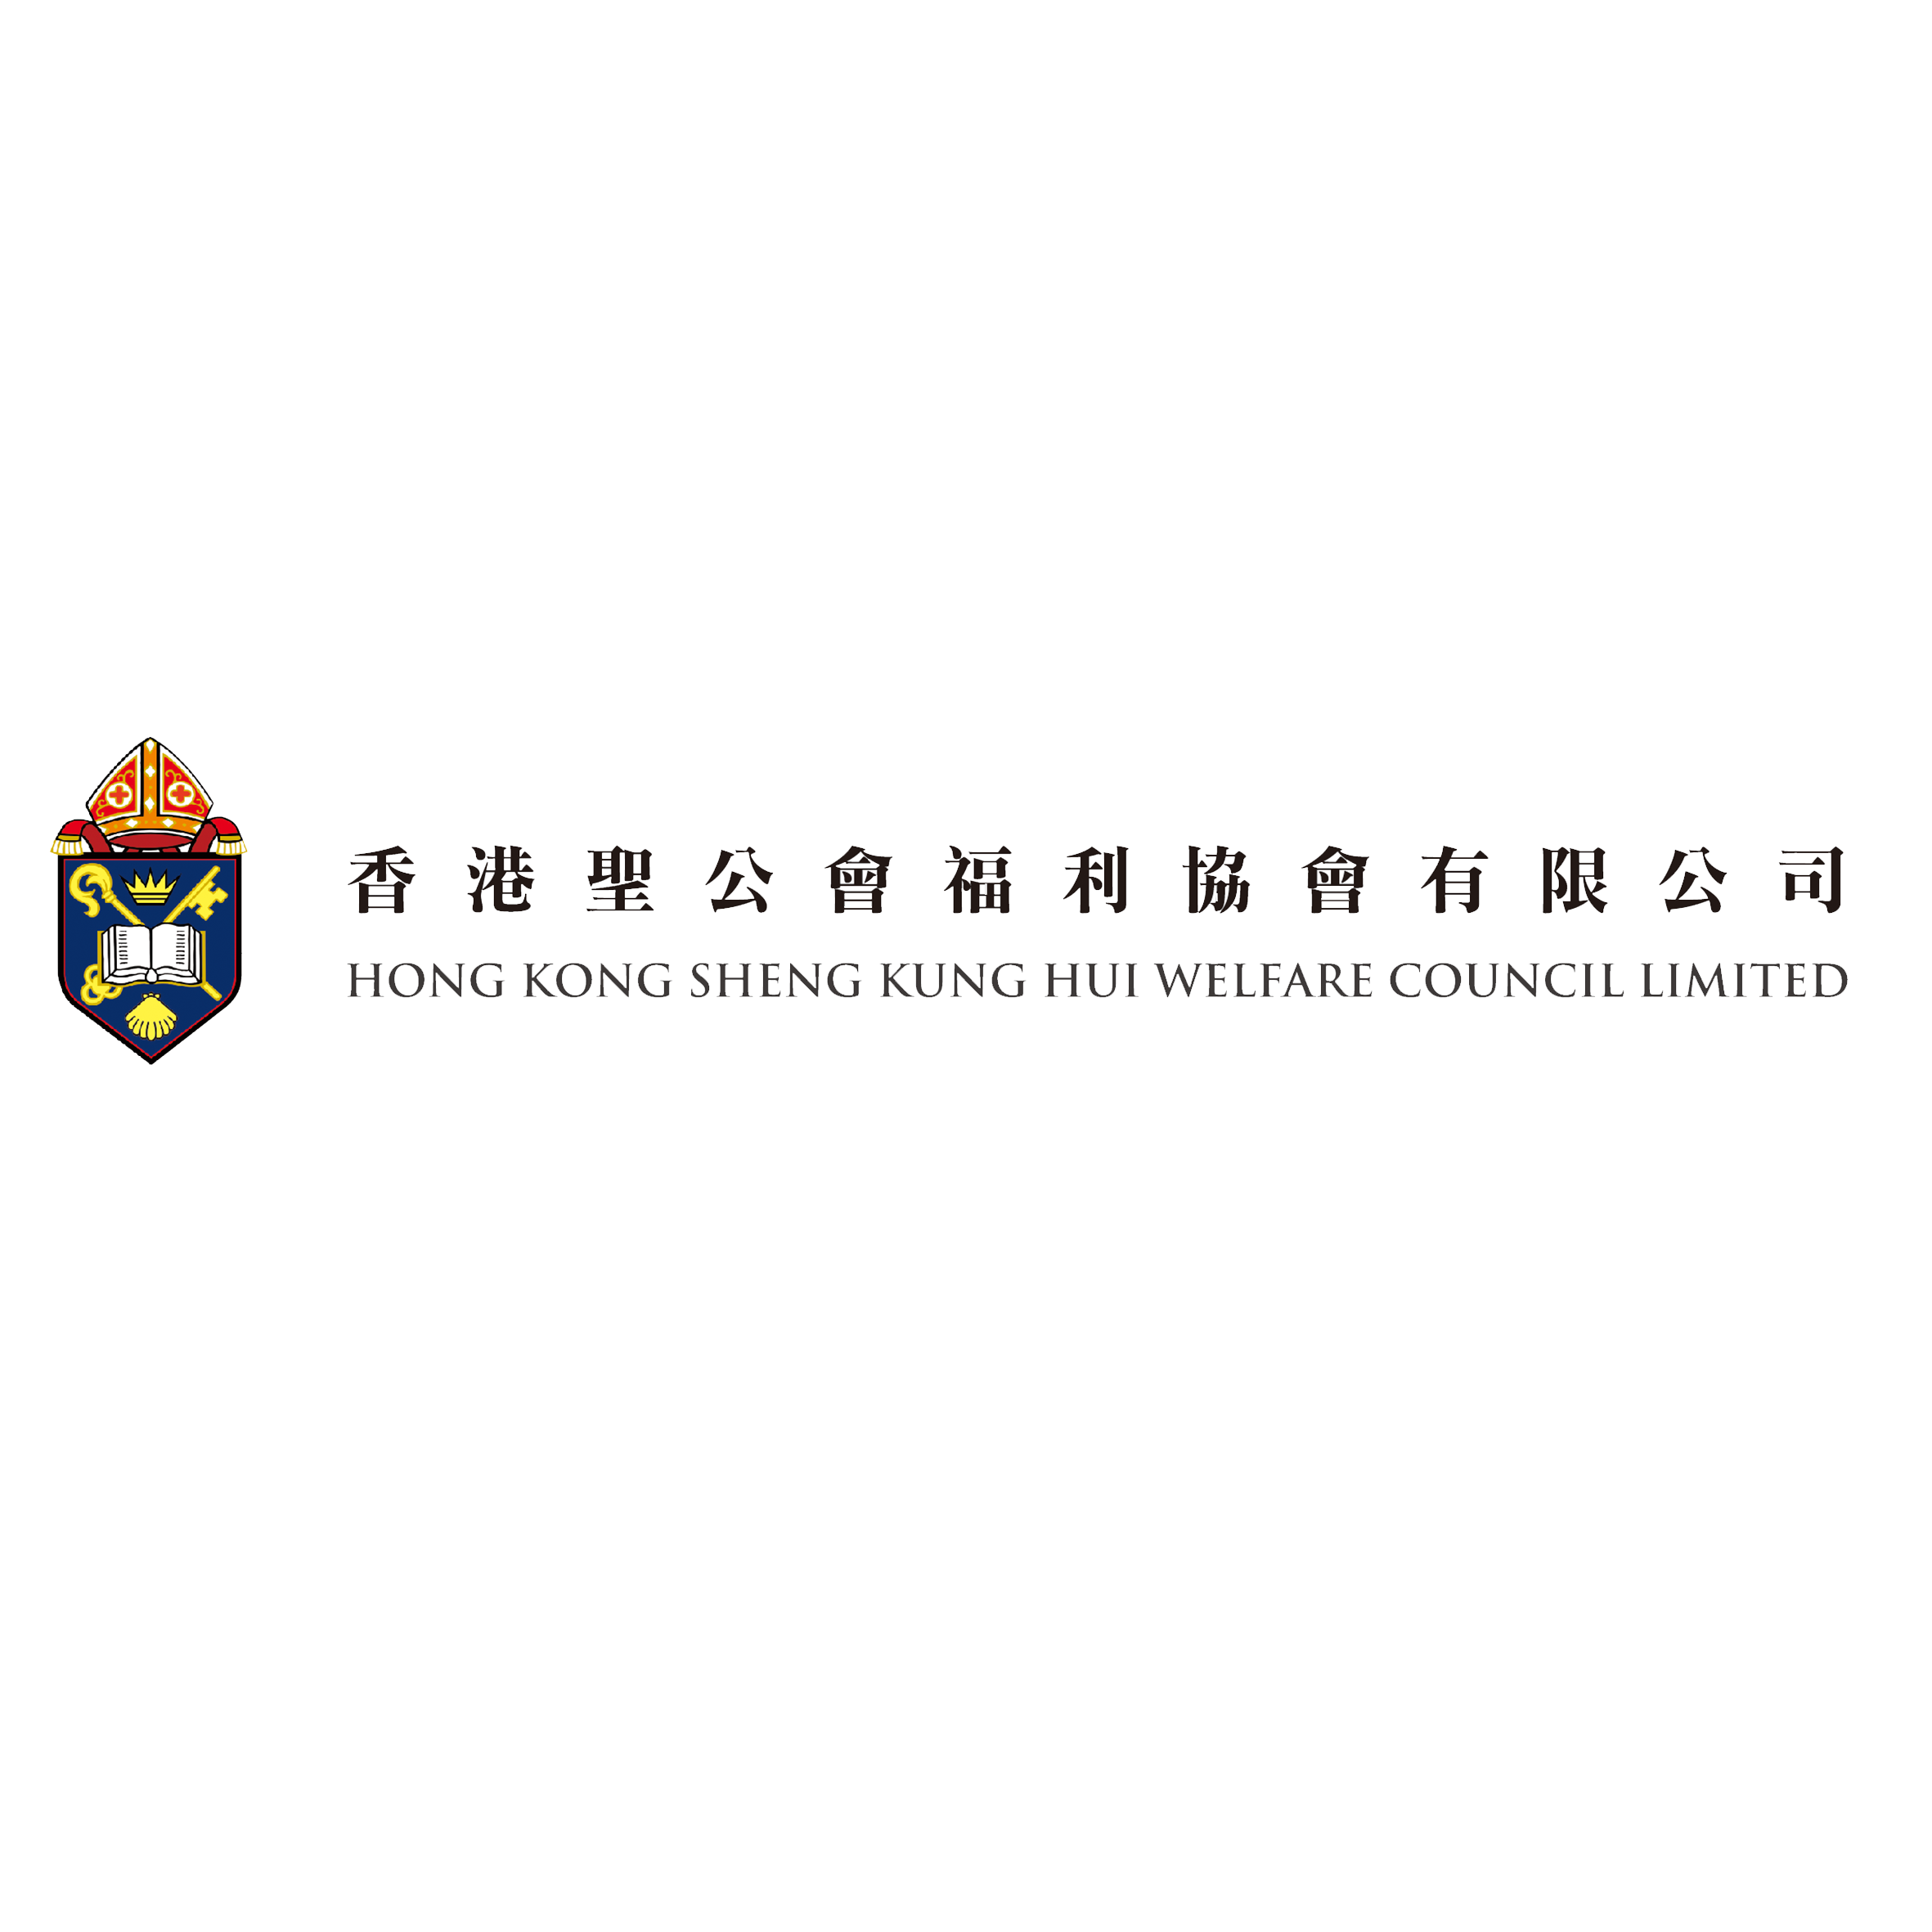 Hong Kong Sheng Kung Hui Welfare Council Limited